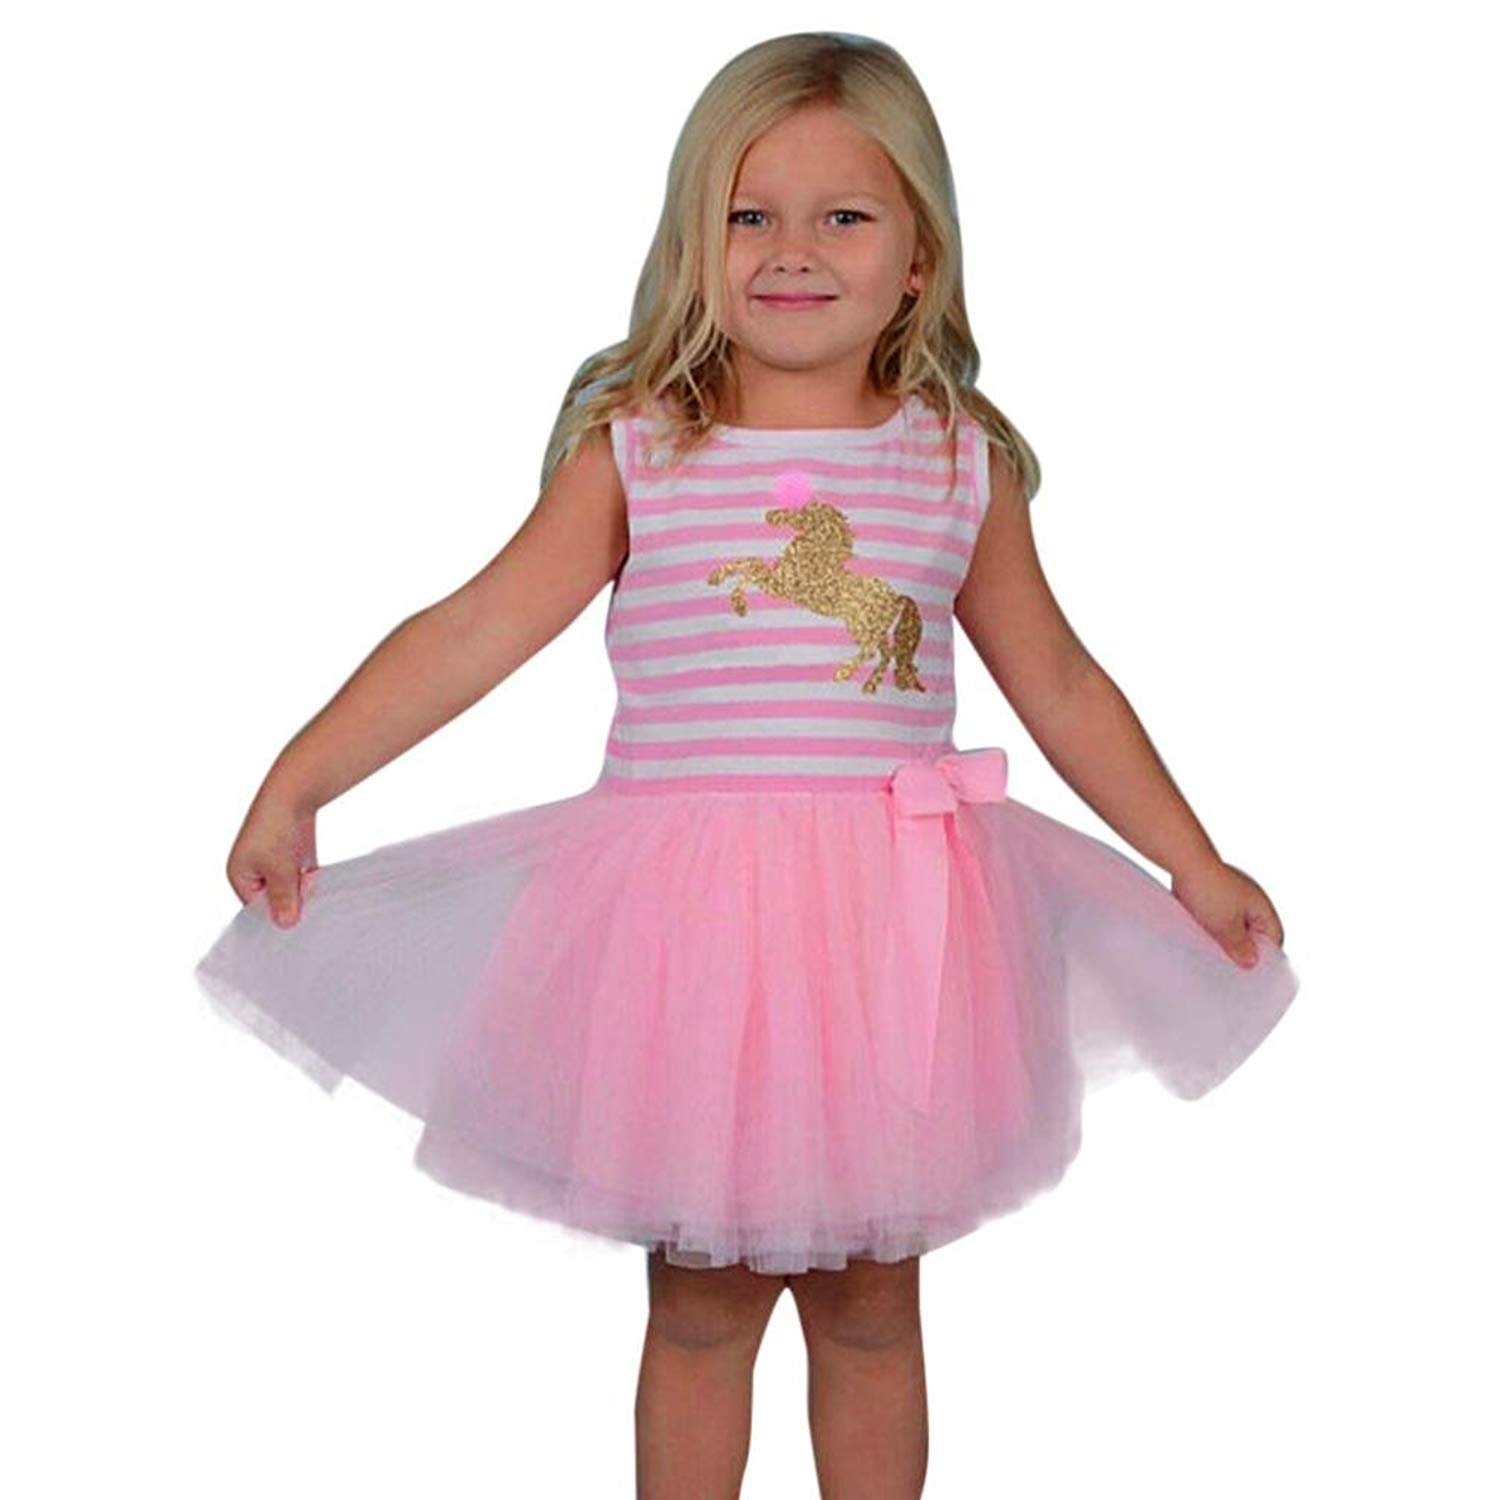 4ee5a845975 Get Quotations · Little Girls Clothes Summer Cute Pink Unicorn Sleeveless  Tulle Tutu Dress Outfits